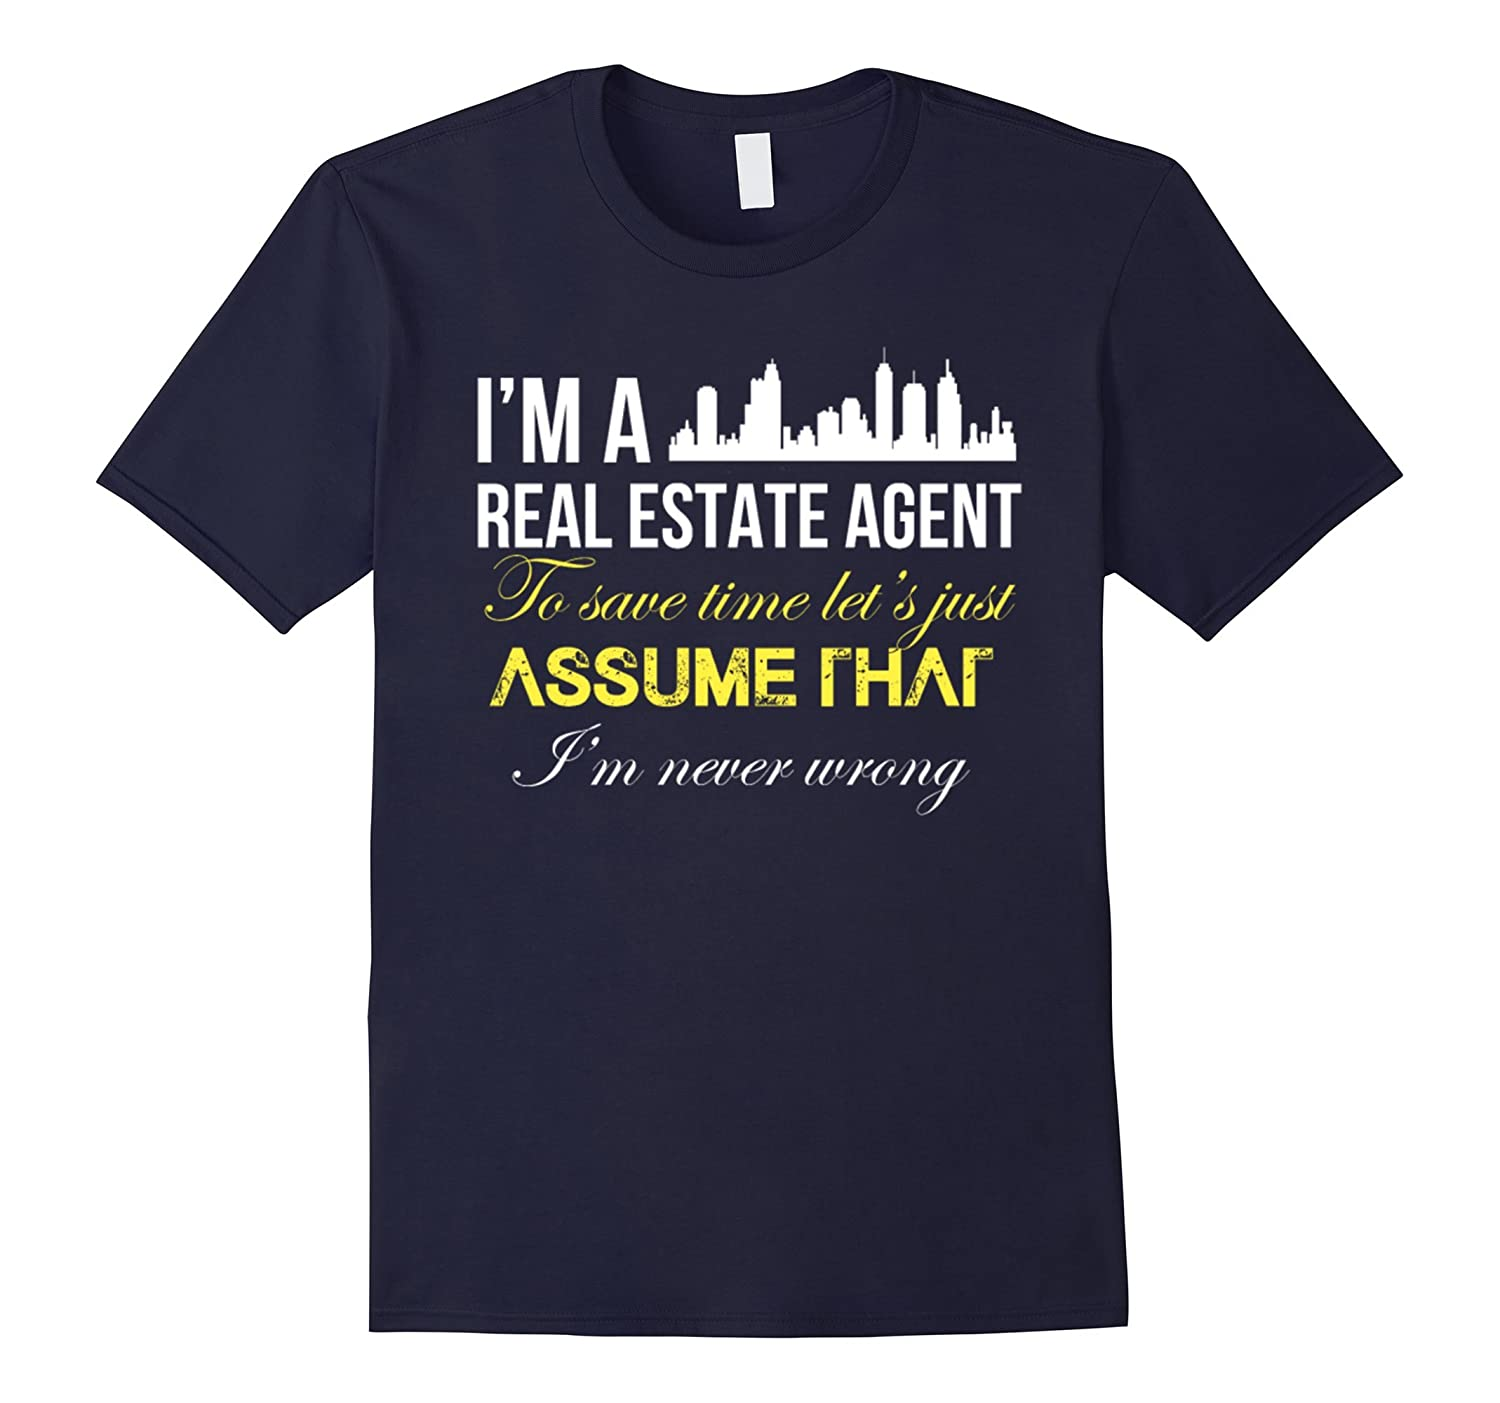 Real estate agent - Im a real estate agent t shirt-TD